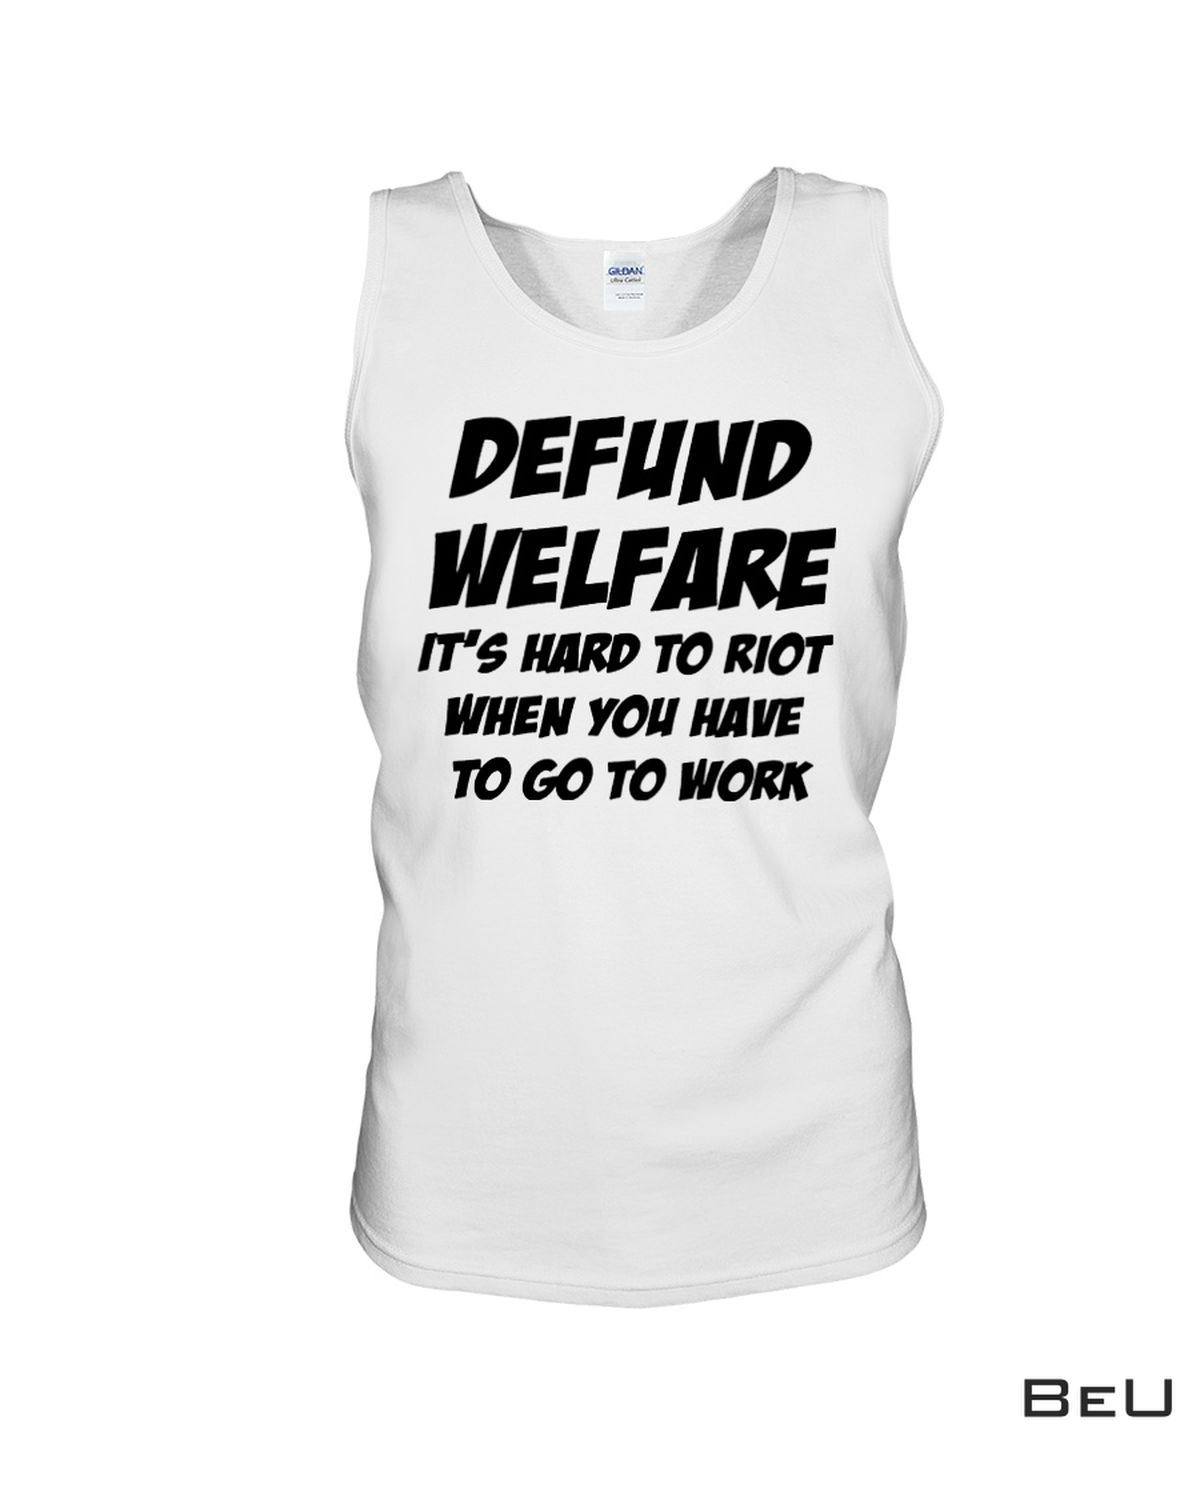 Great artwork! Defund Welfare It's Hard To Riot When You Have To Go To Work Shirt